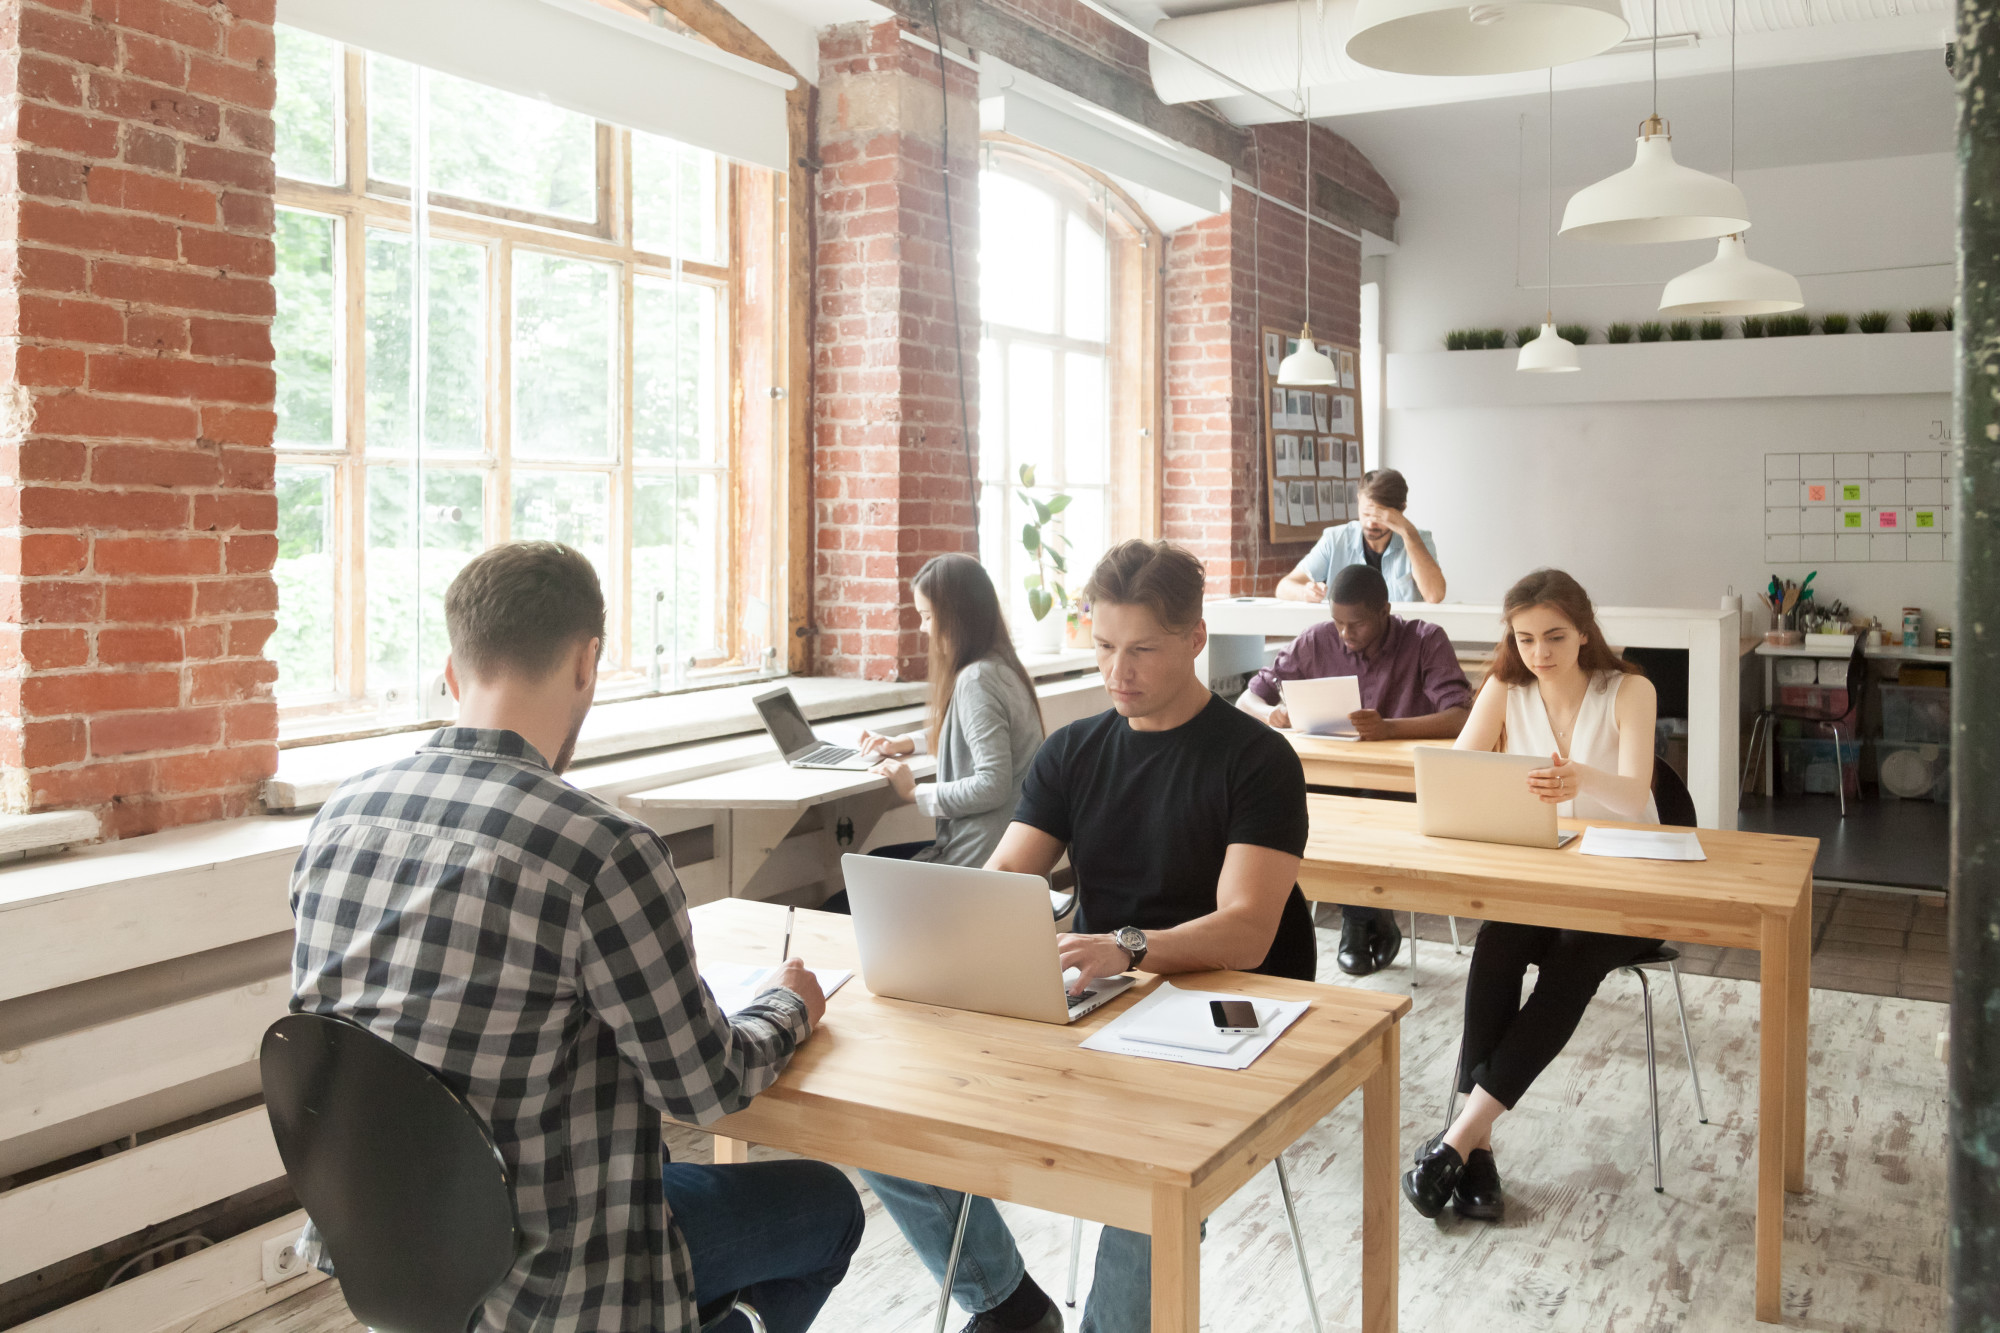 5 Tips for Finding the Best Co-Working Space for Your Business